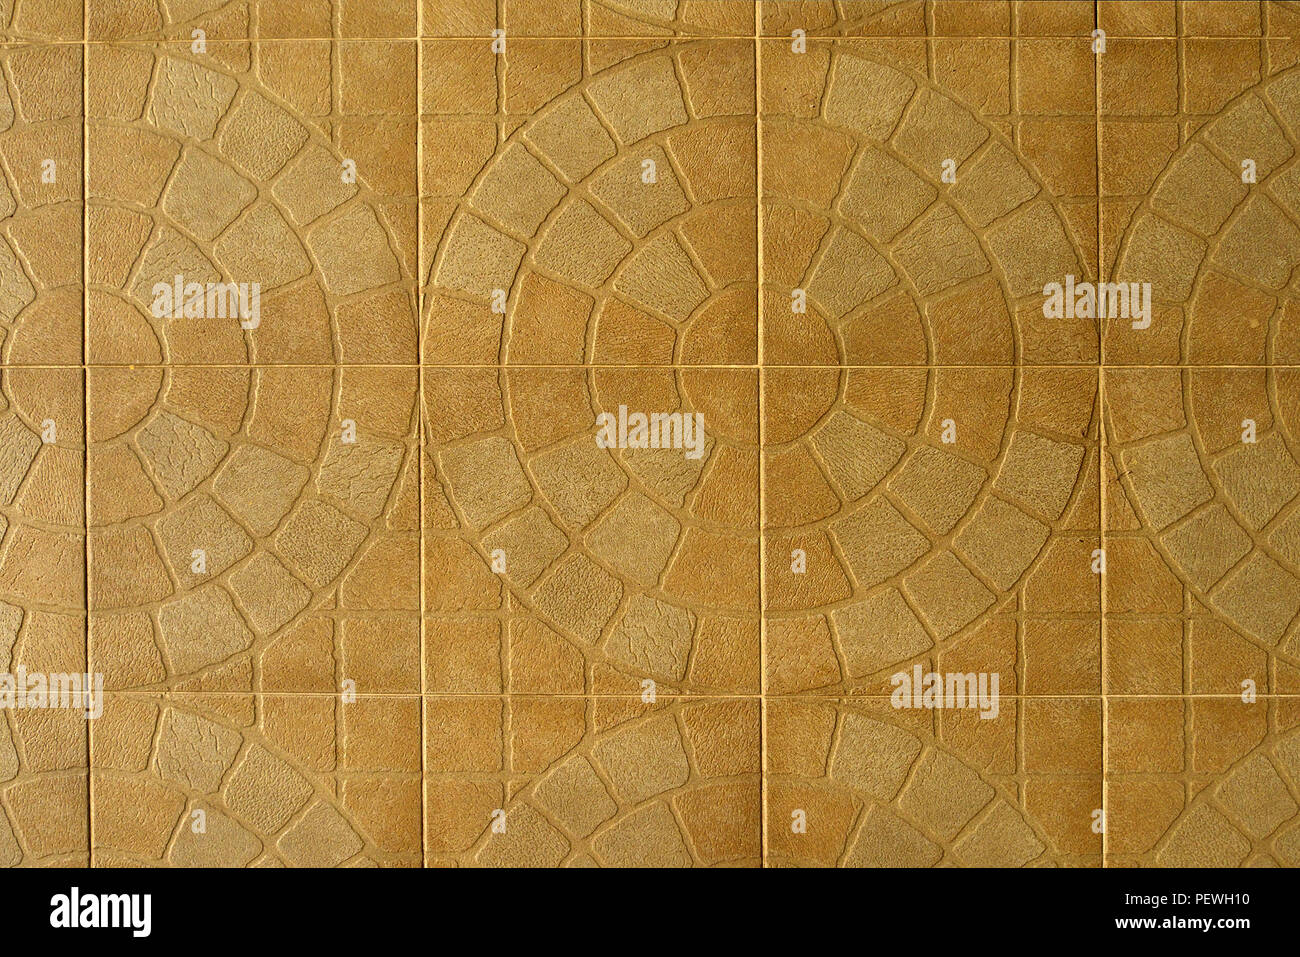 Beautiful Ceramic Tile Mosaic With Interesting Pattern And Texture